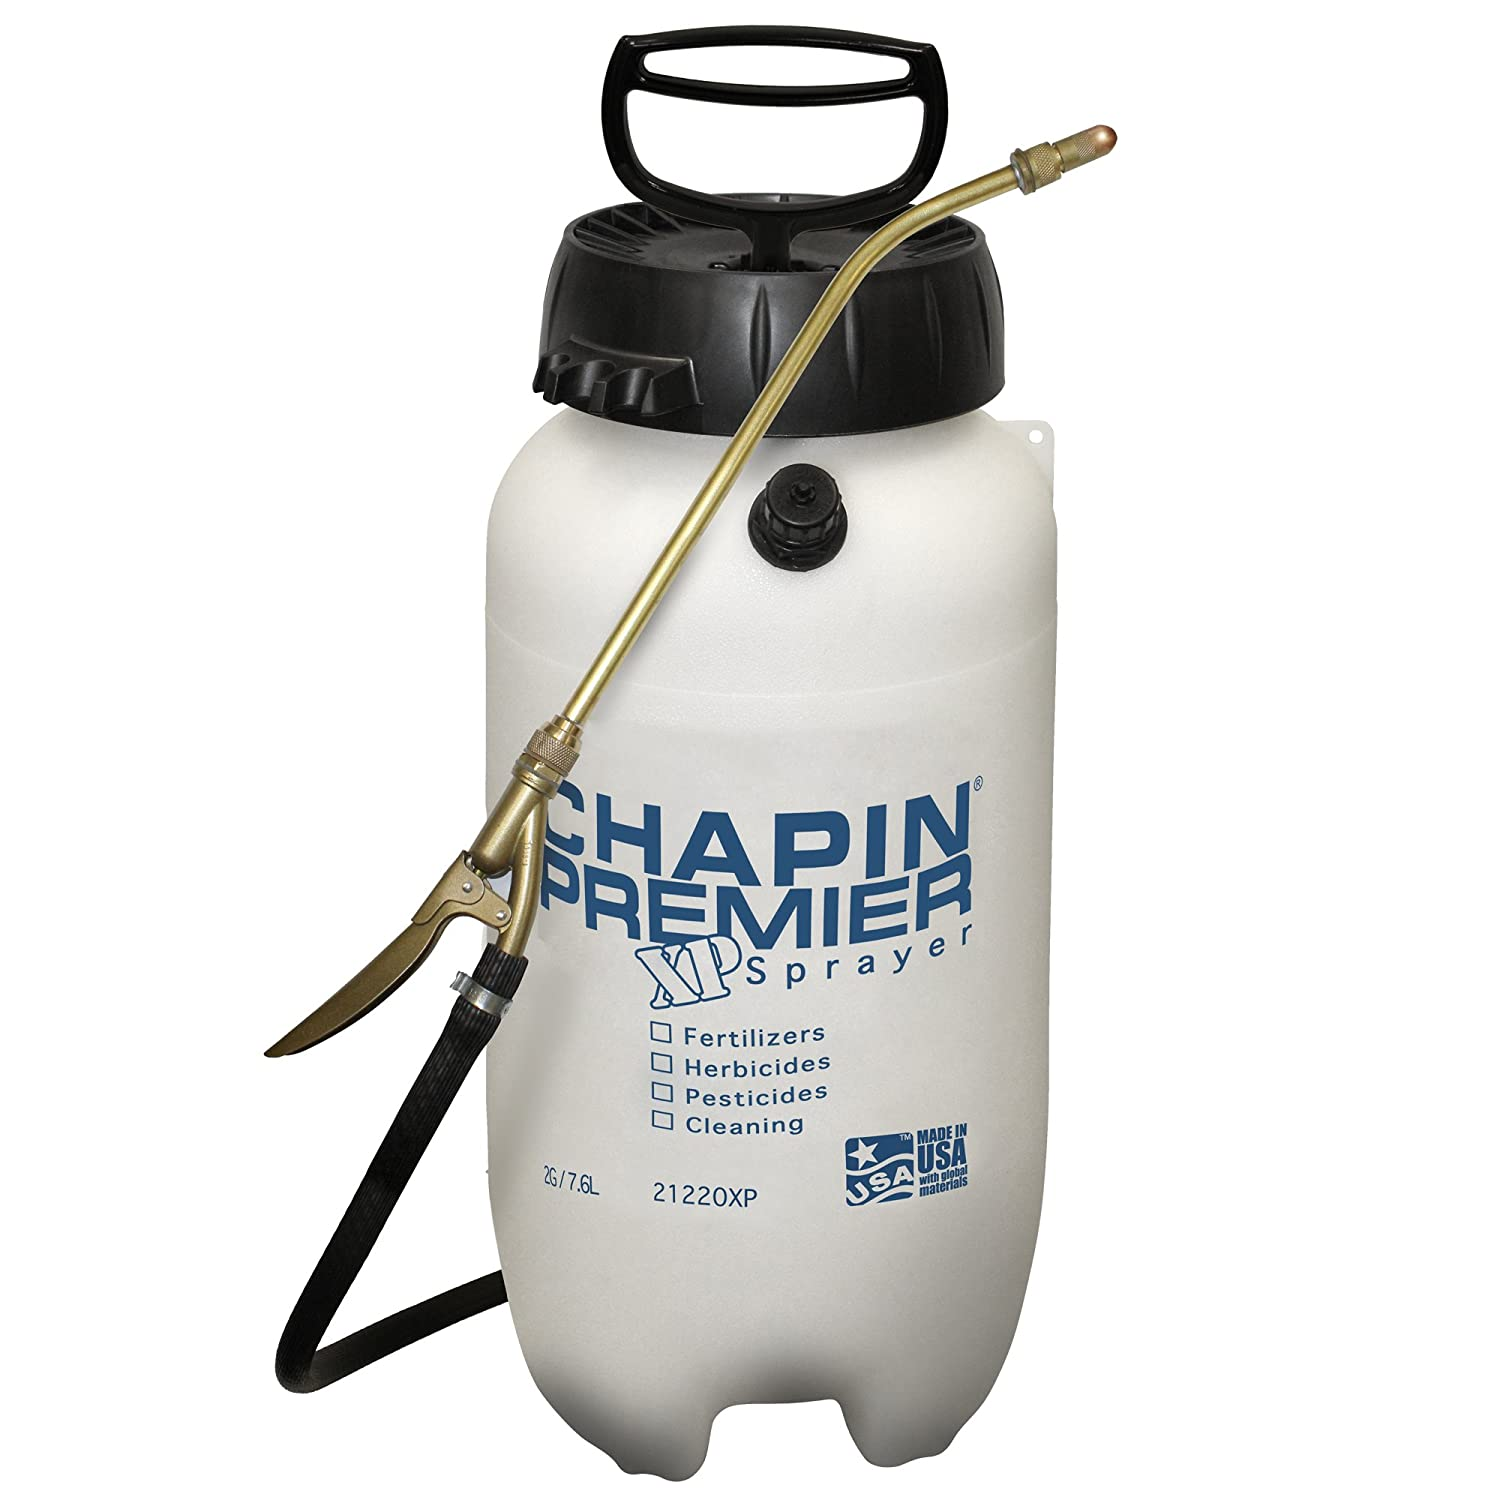 Chapin 21220XP 2-Gallon Premire Pro XP Poly Sprayer for Fertilizer, Herbicides and Pesticides, 2-Gallon (1 Sprayer/Package)